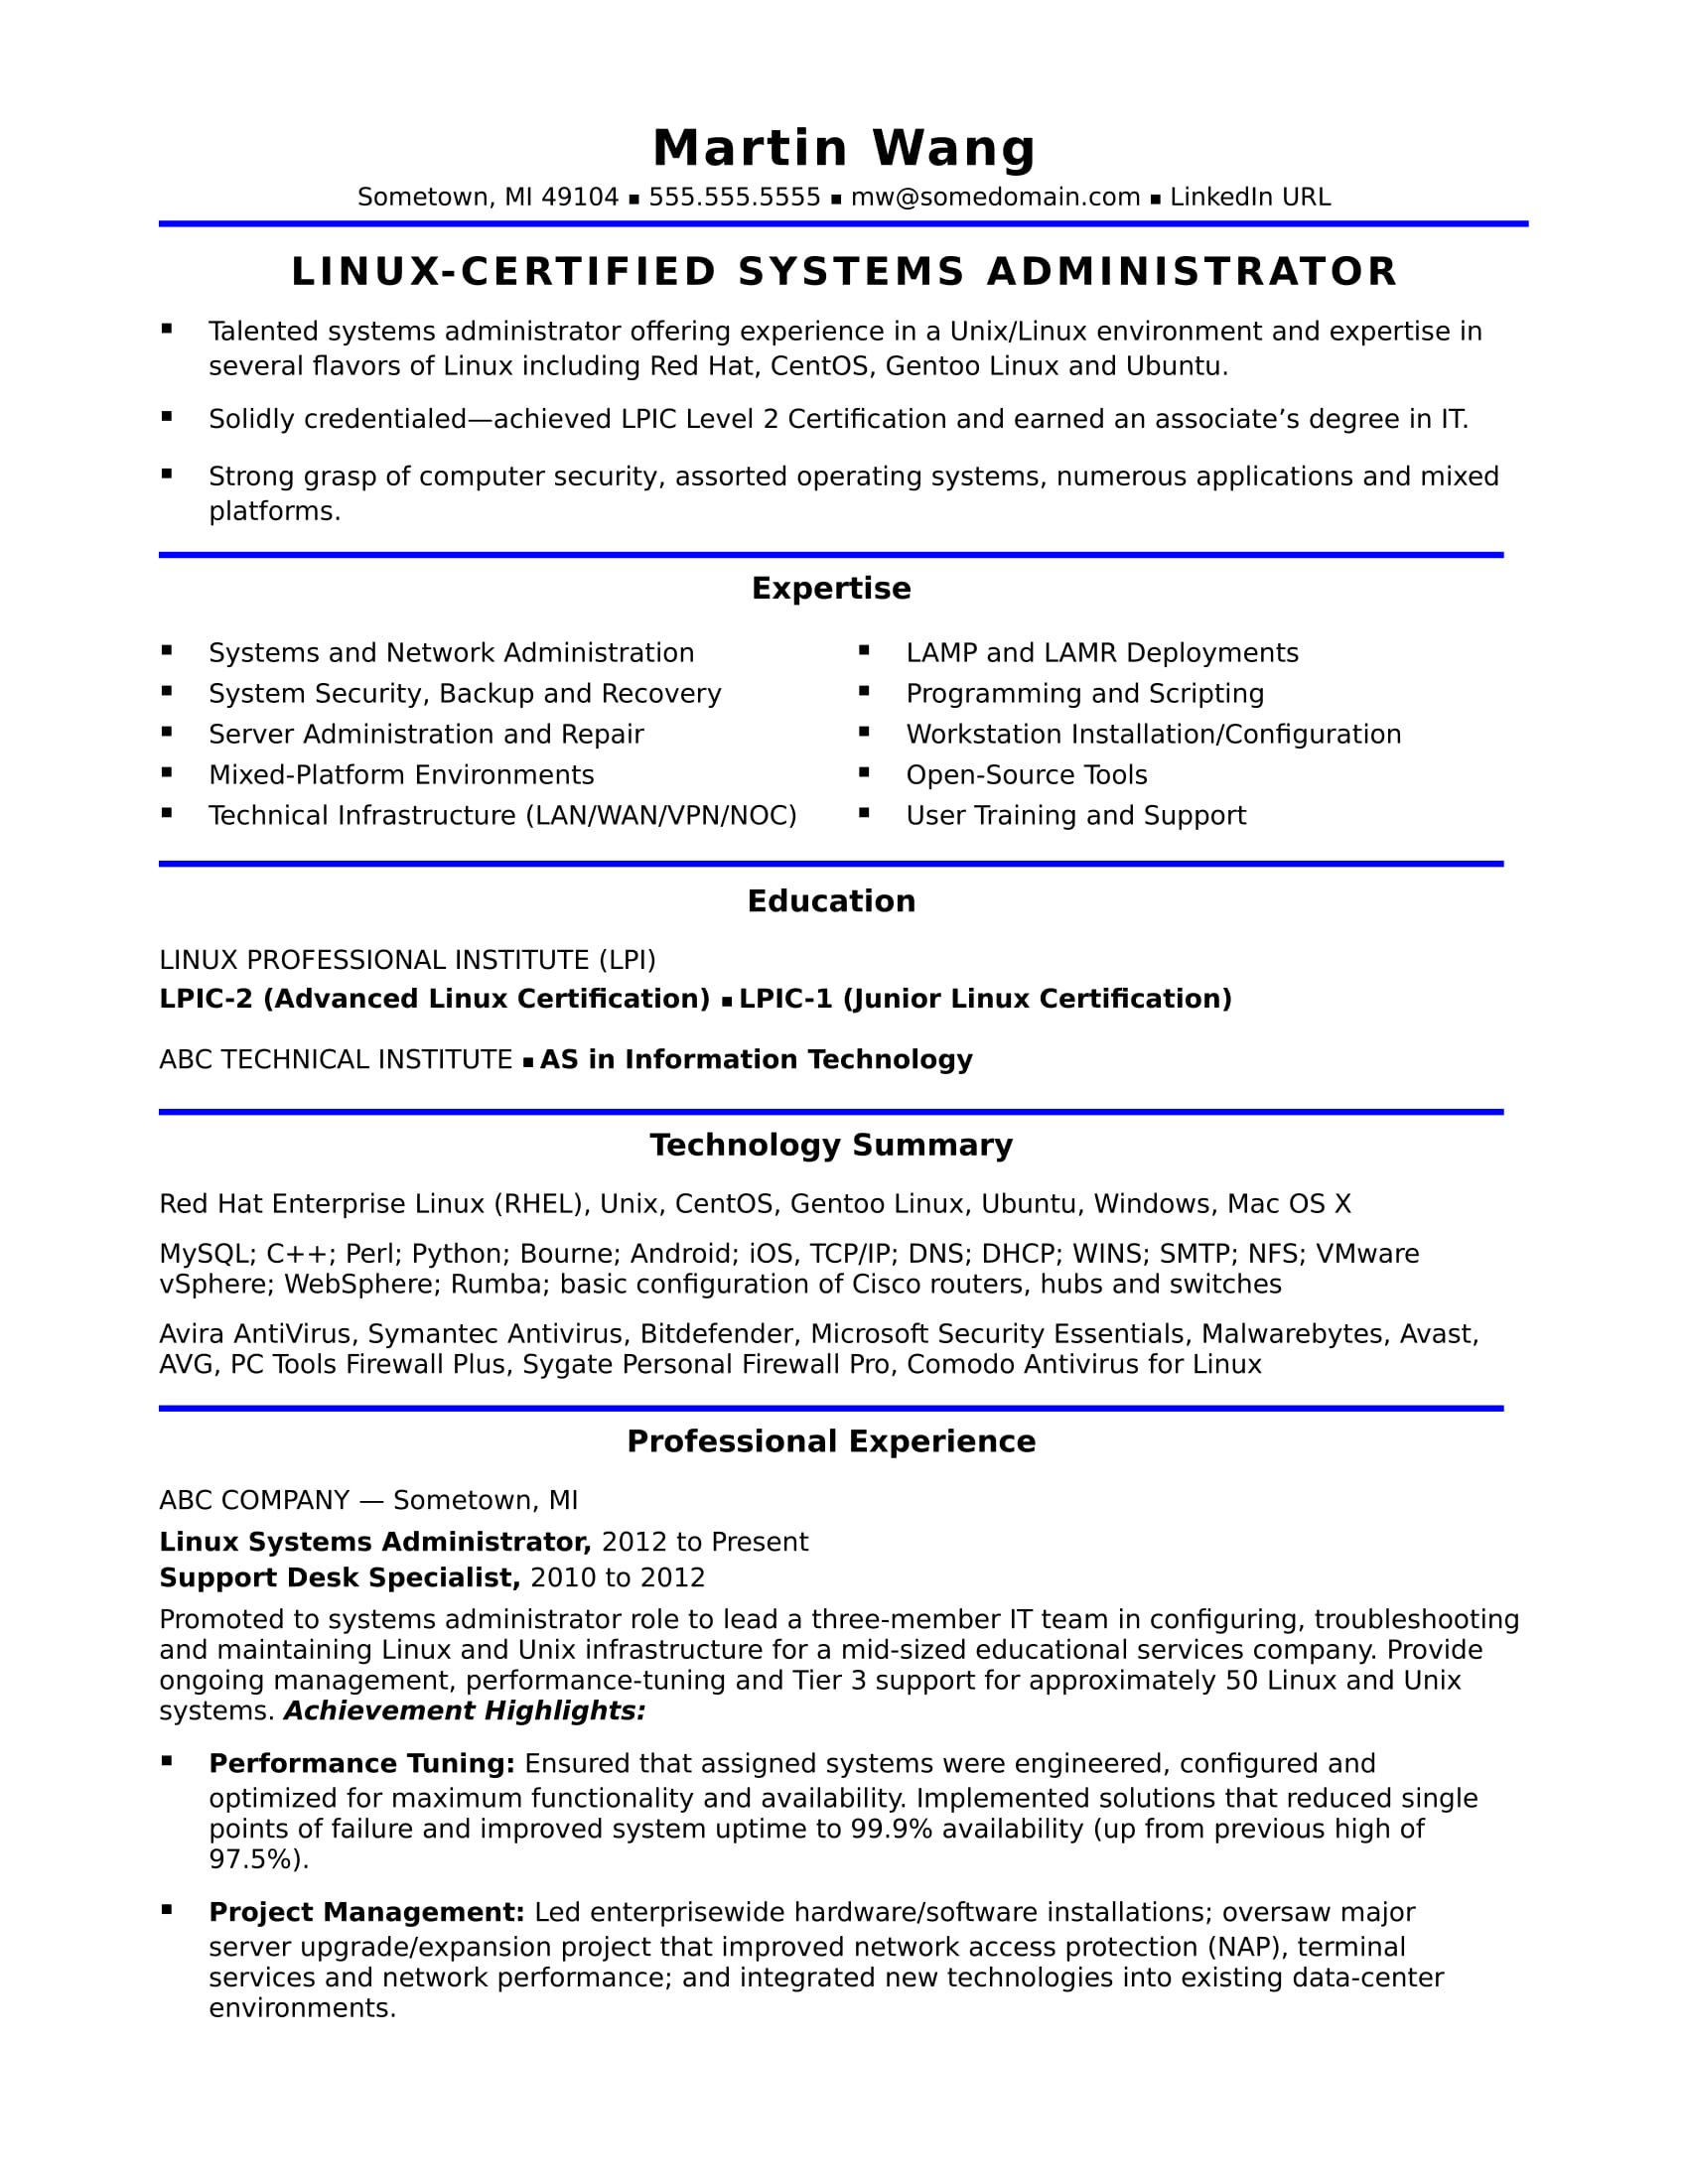 sample resume for a midlevel systems administrator